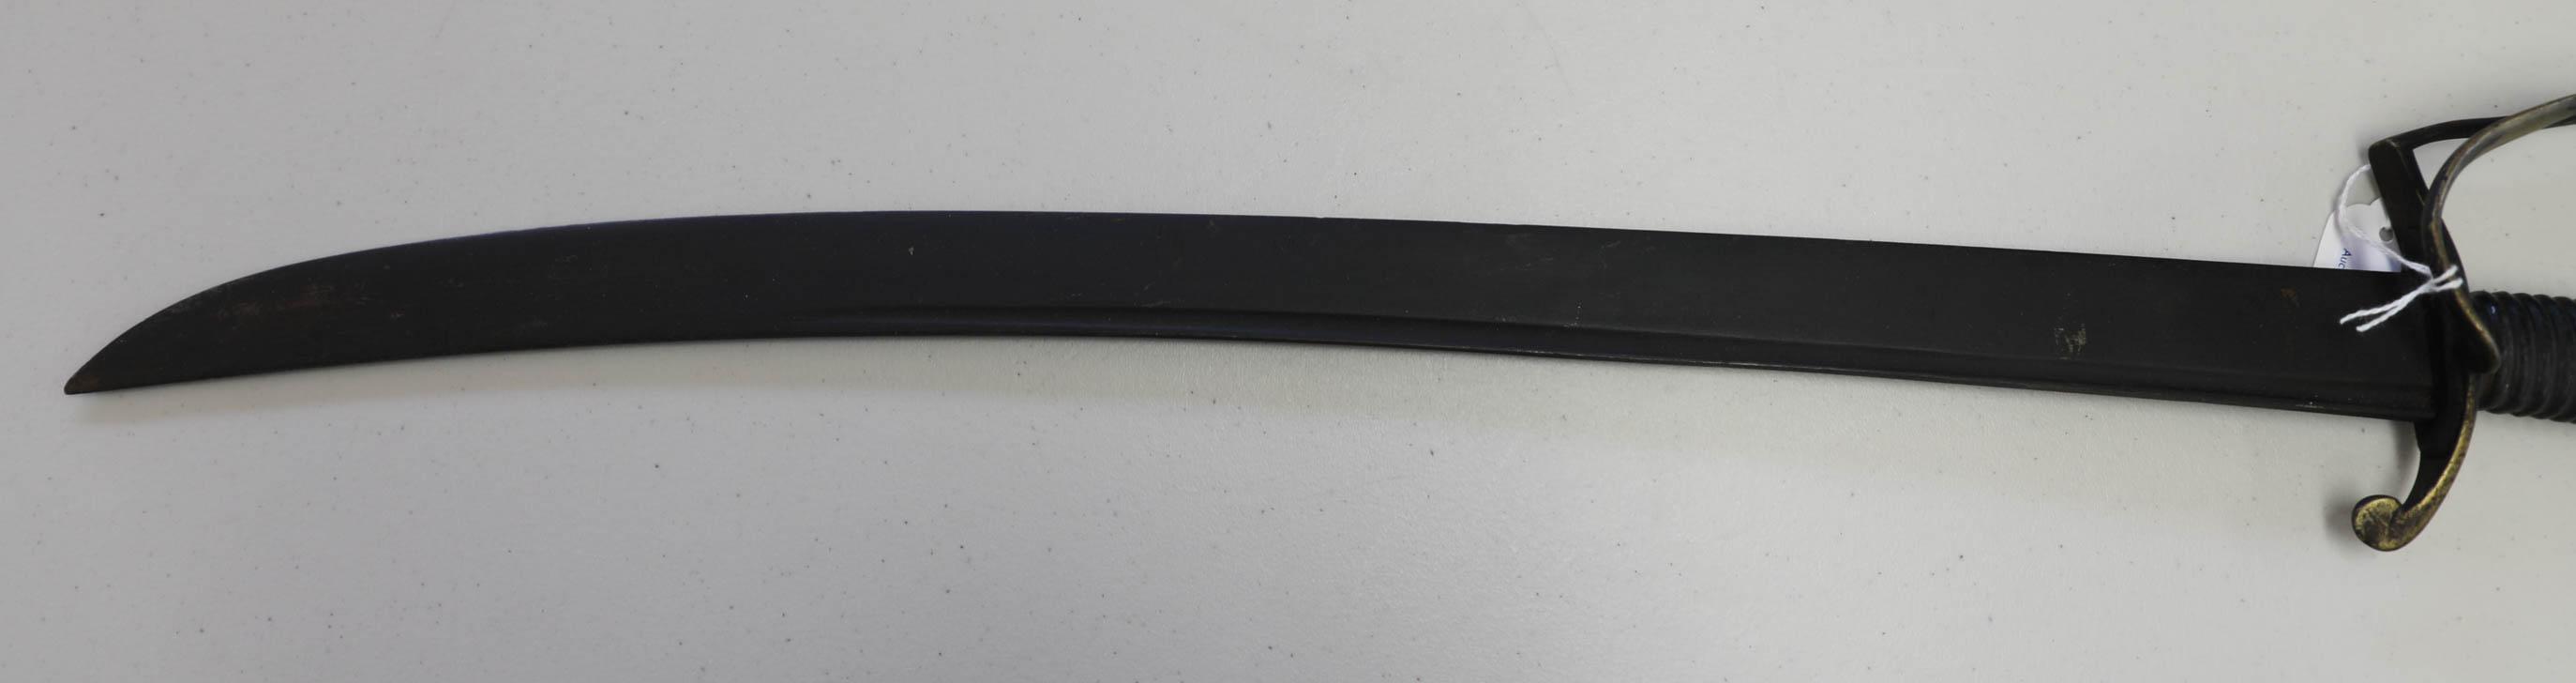 Lot 031 - A Georgian cutlass, the slightly curved blade with single fuller, joining a stirrup and swept bar